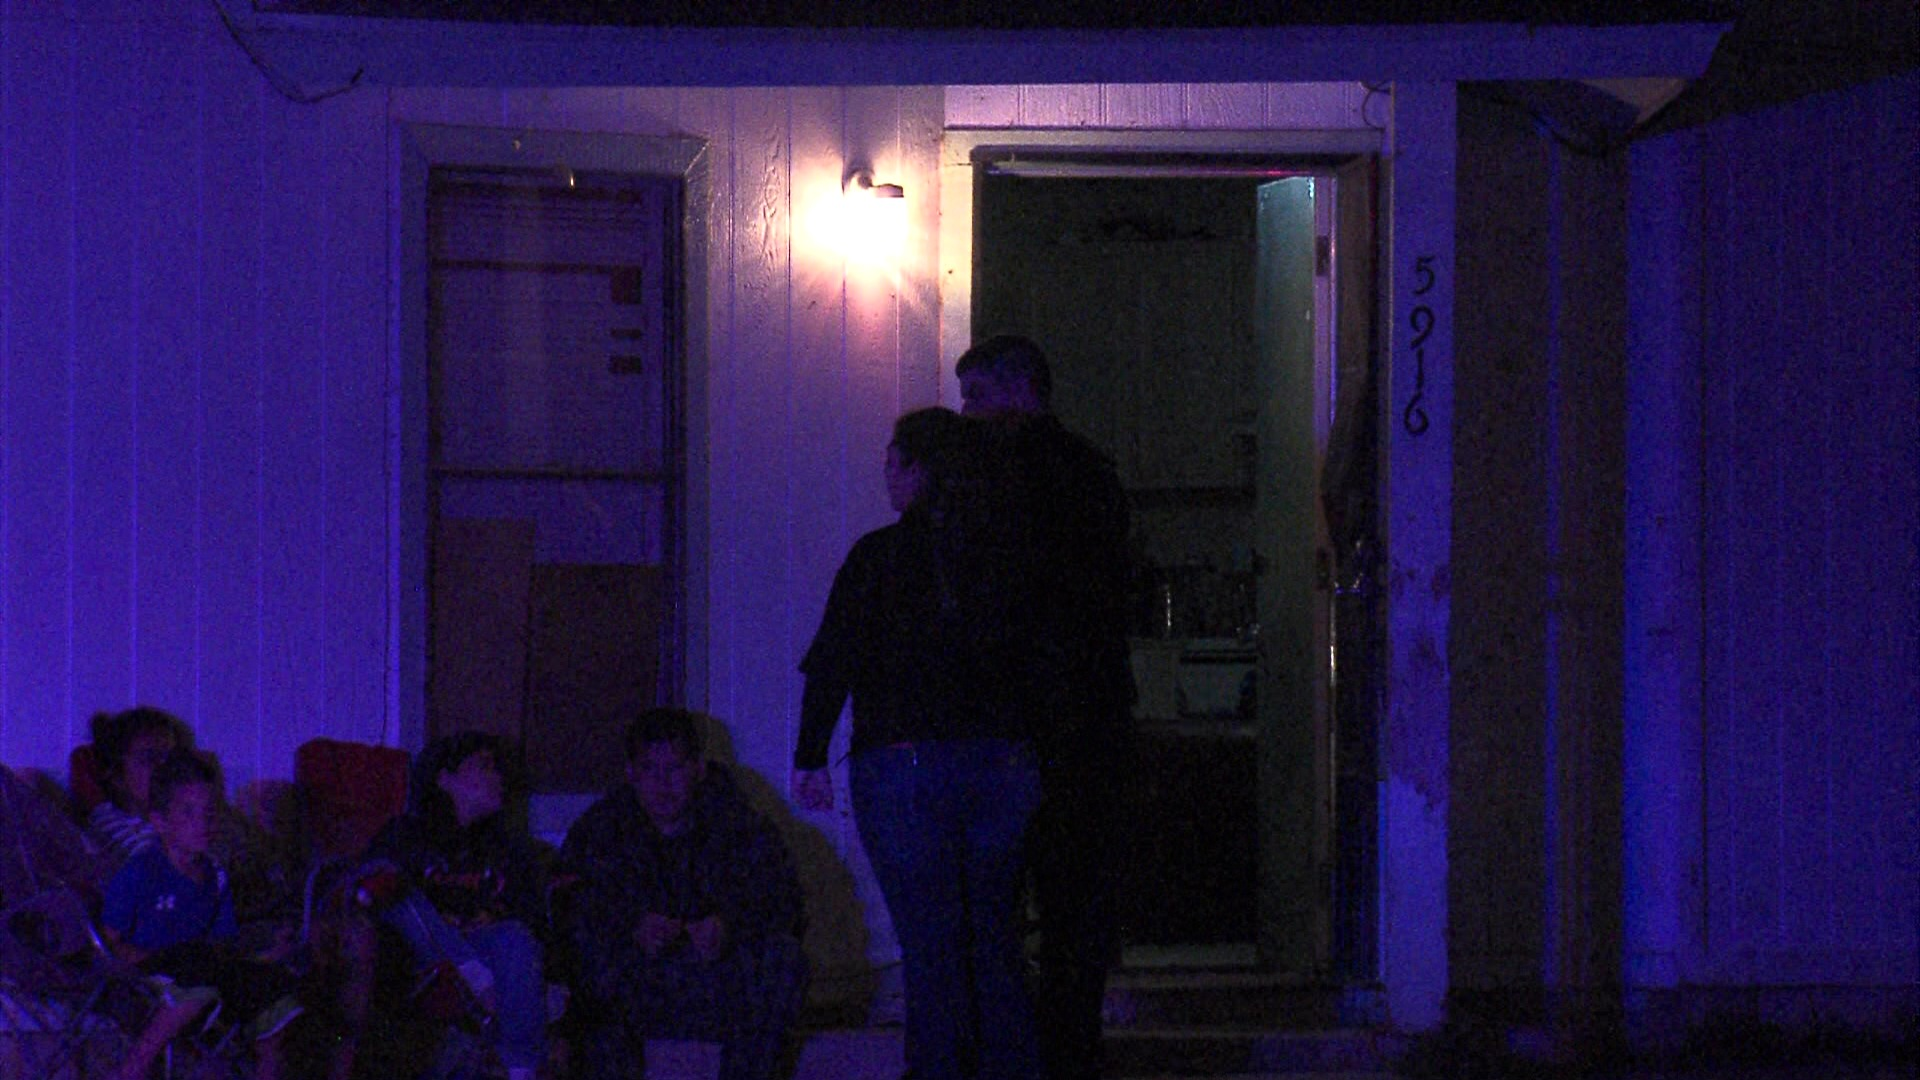 SAPD: Woman struck in drive-by shooting at home with children inside | My San Antonio